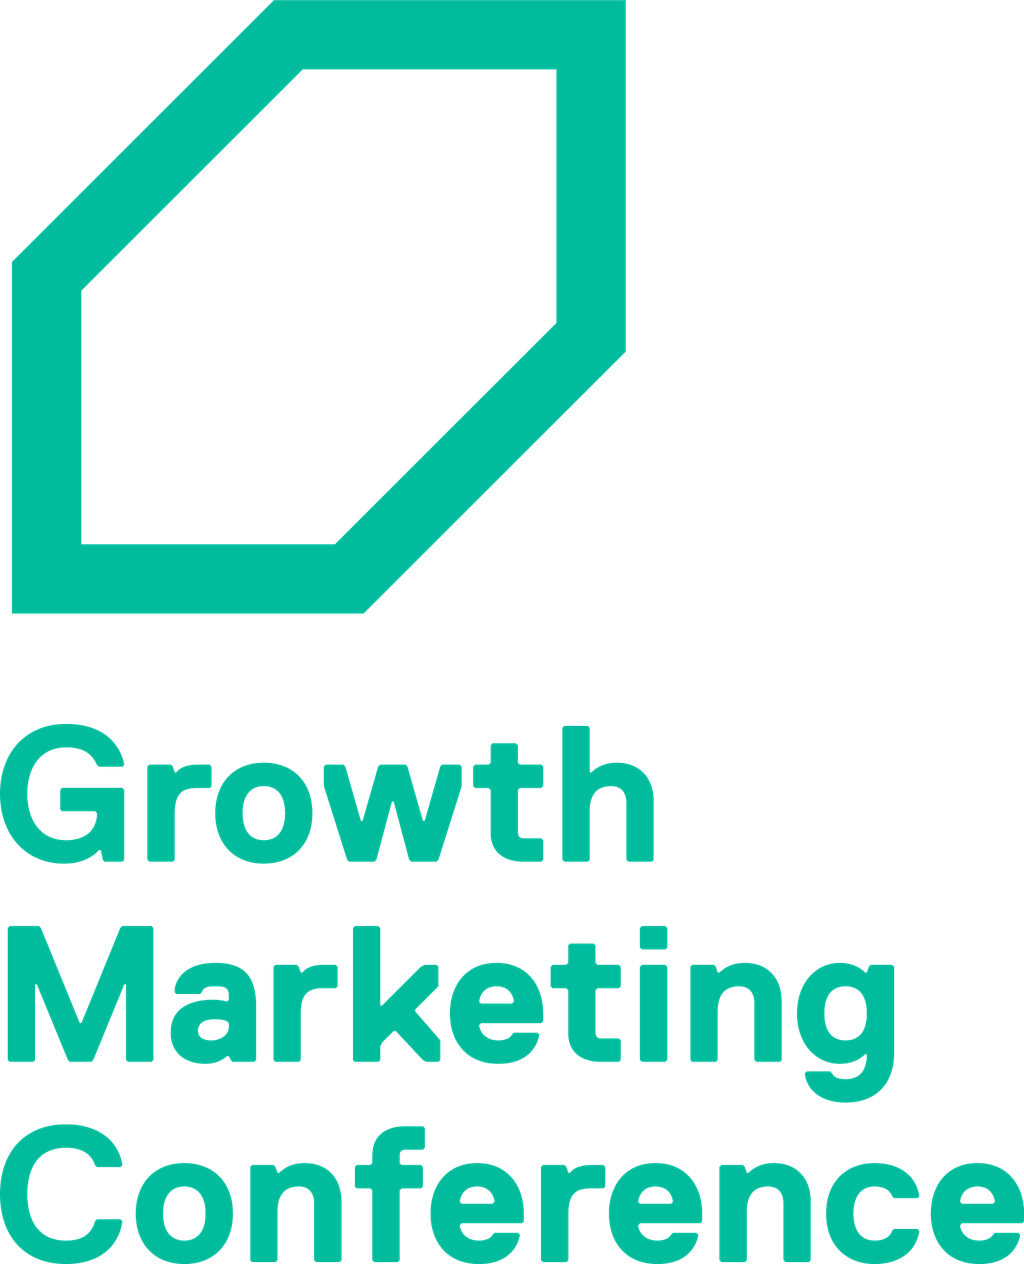 Growth Marketing Conference